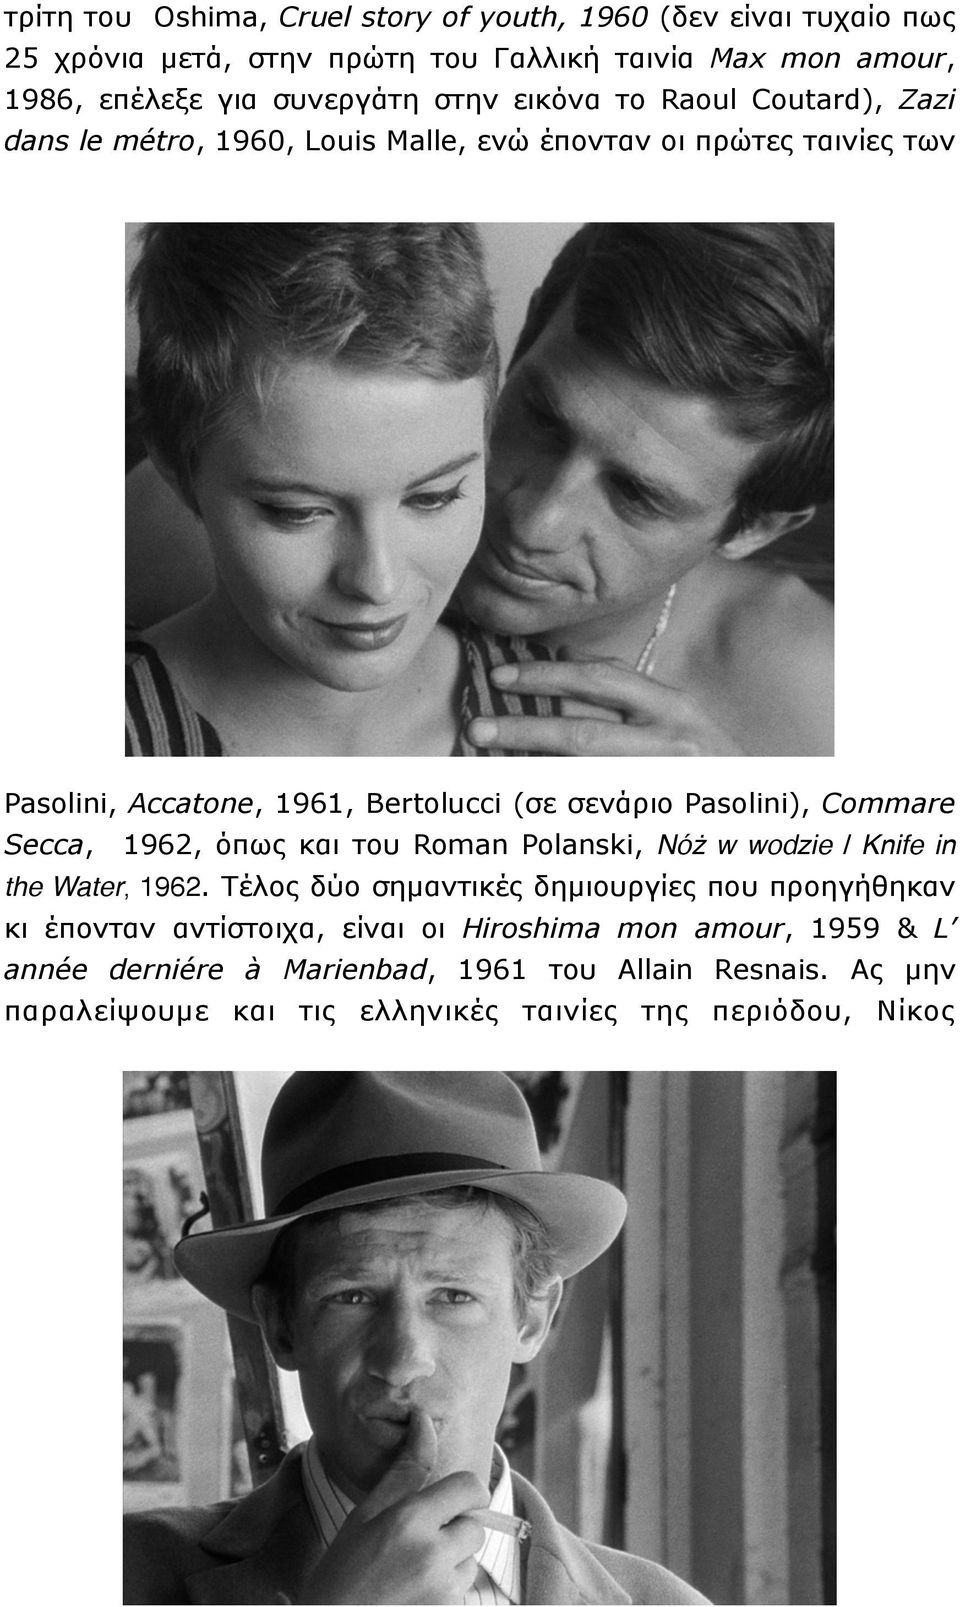 Pasolini), Commare Secca, 1962, όπως και του Roman Polanski, Nóż w wodzie / Knife in the Water, 1962.